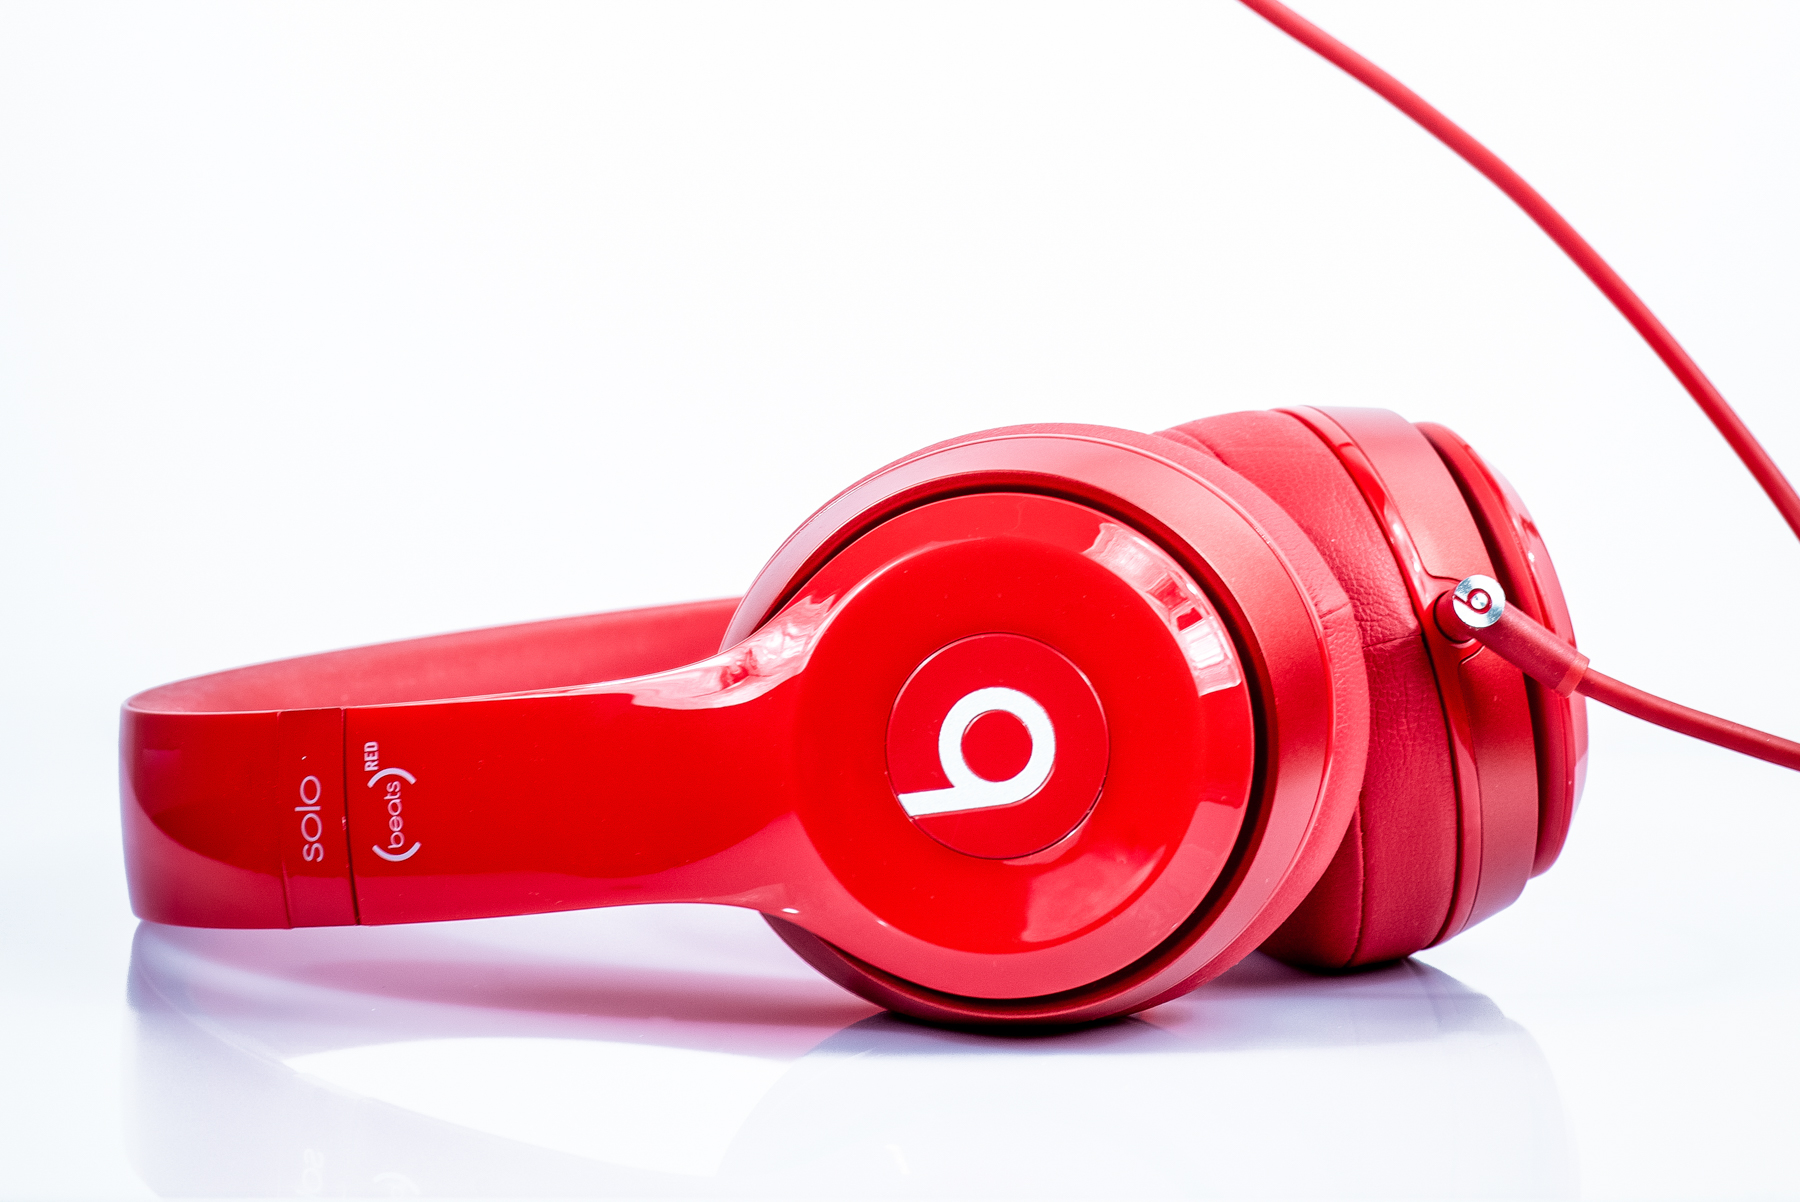 Dr. Dre Beats Product Photography captured by TOMO Pictures in Charleston, SC